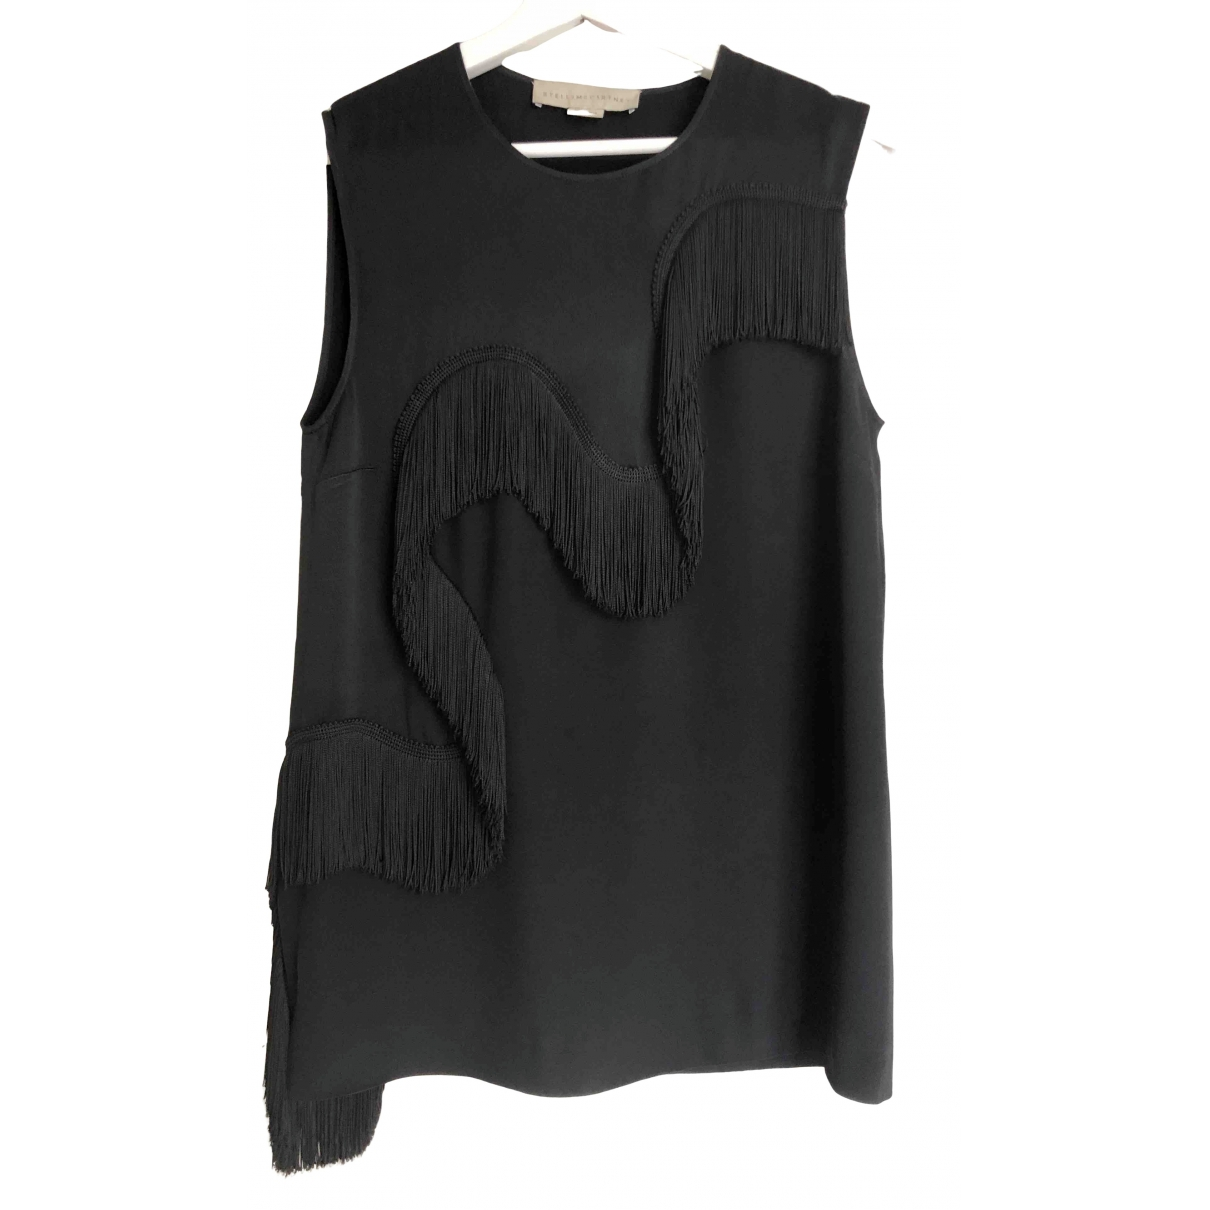 Camiseta sin mangas Stella Mccartney